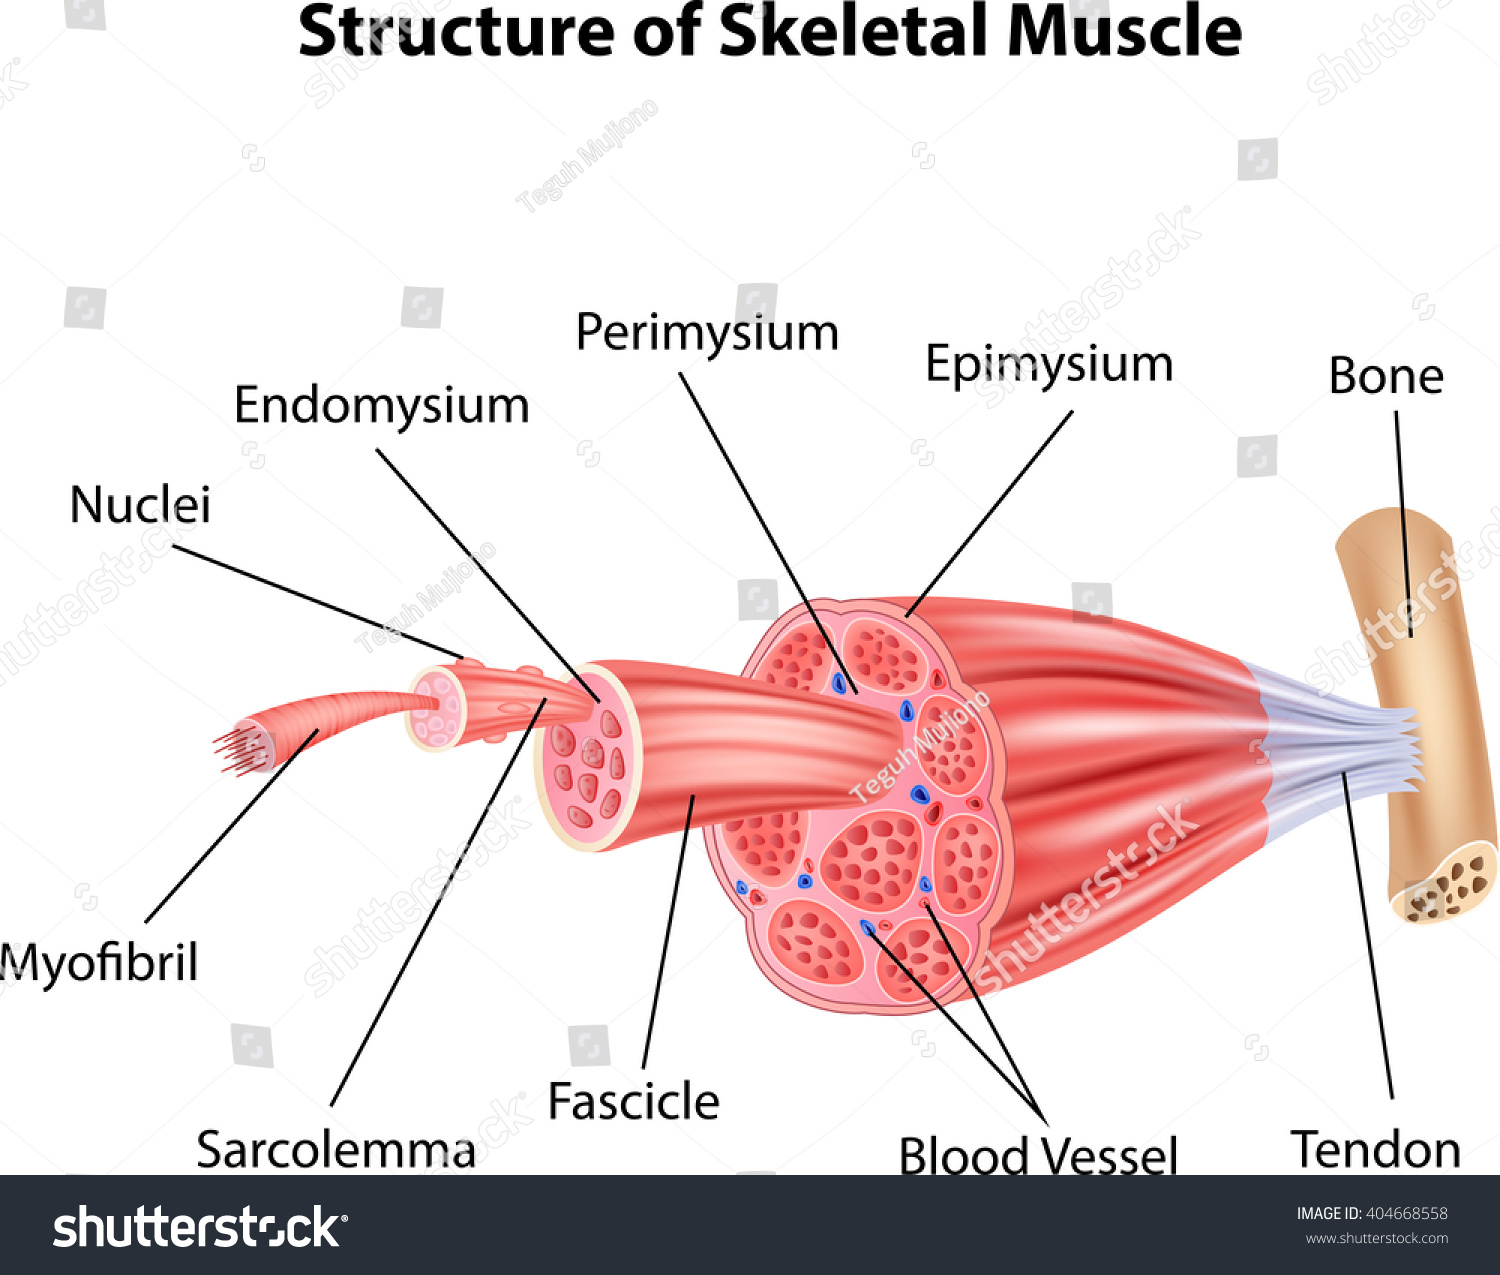 human muscle cell diagram 7 pin round trailer plug wiring illustration structure skeletal anatomy stock